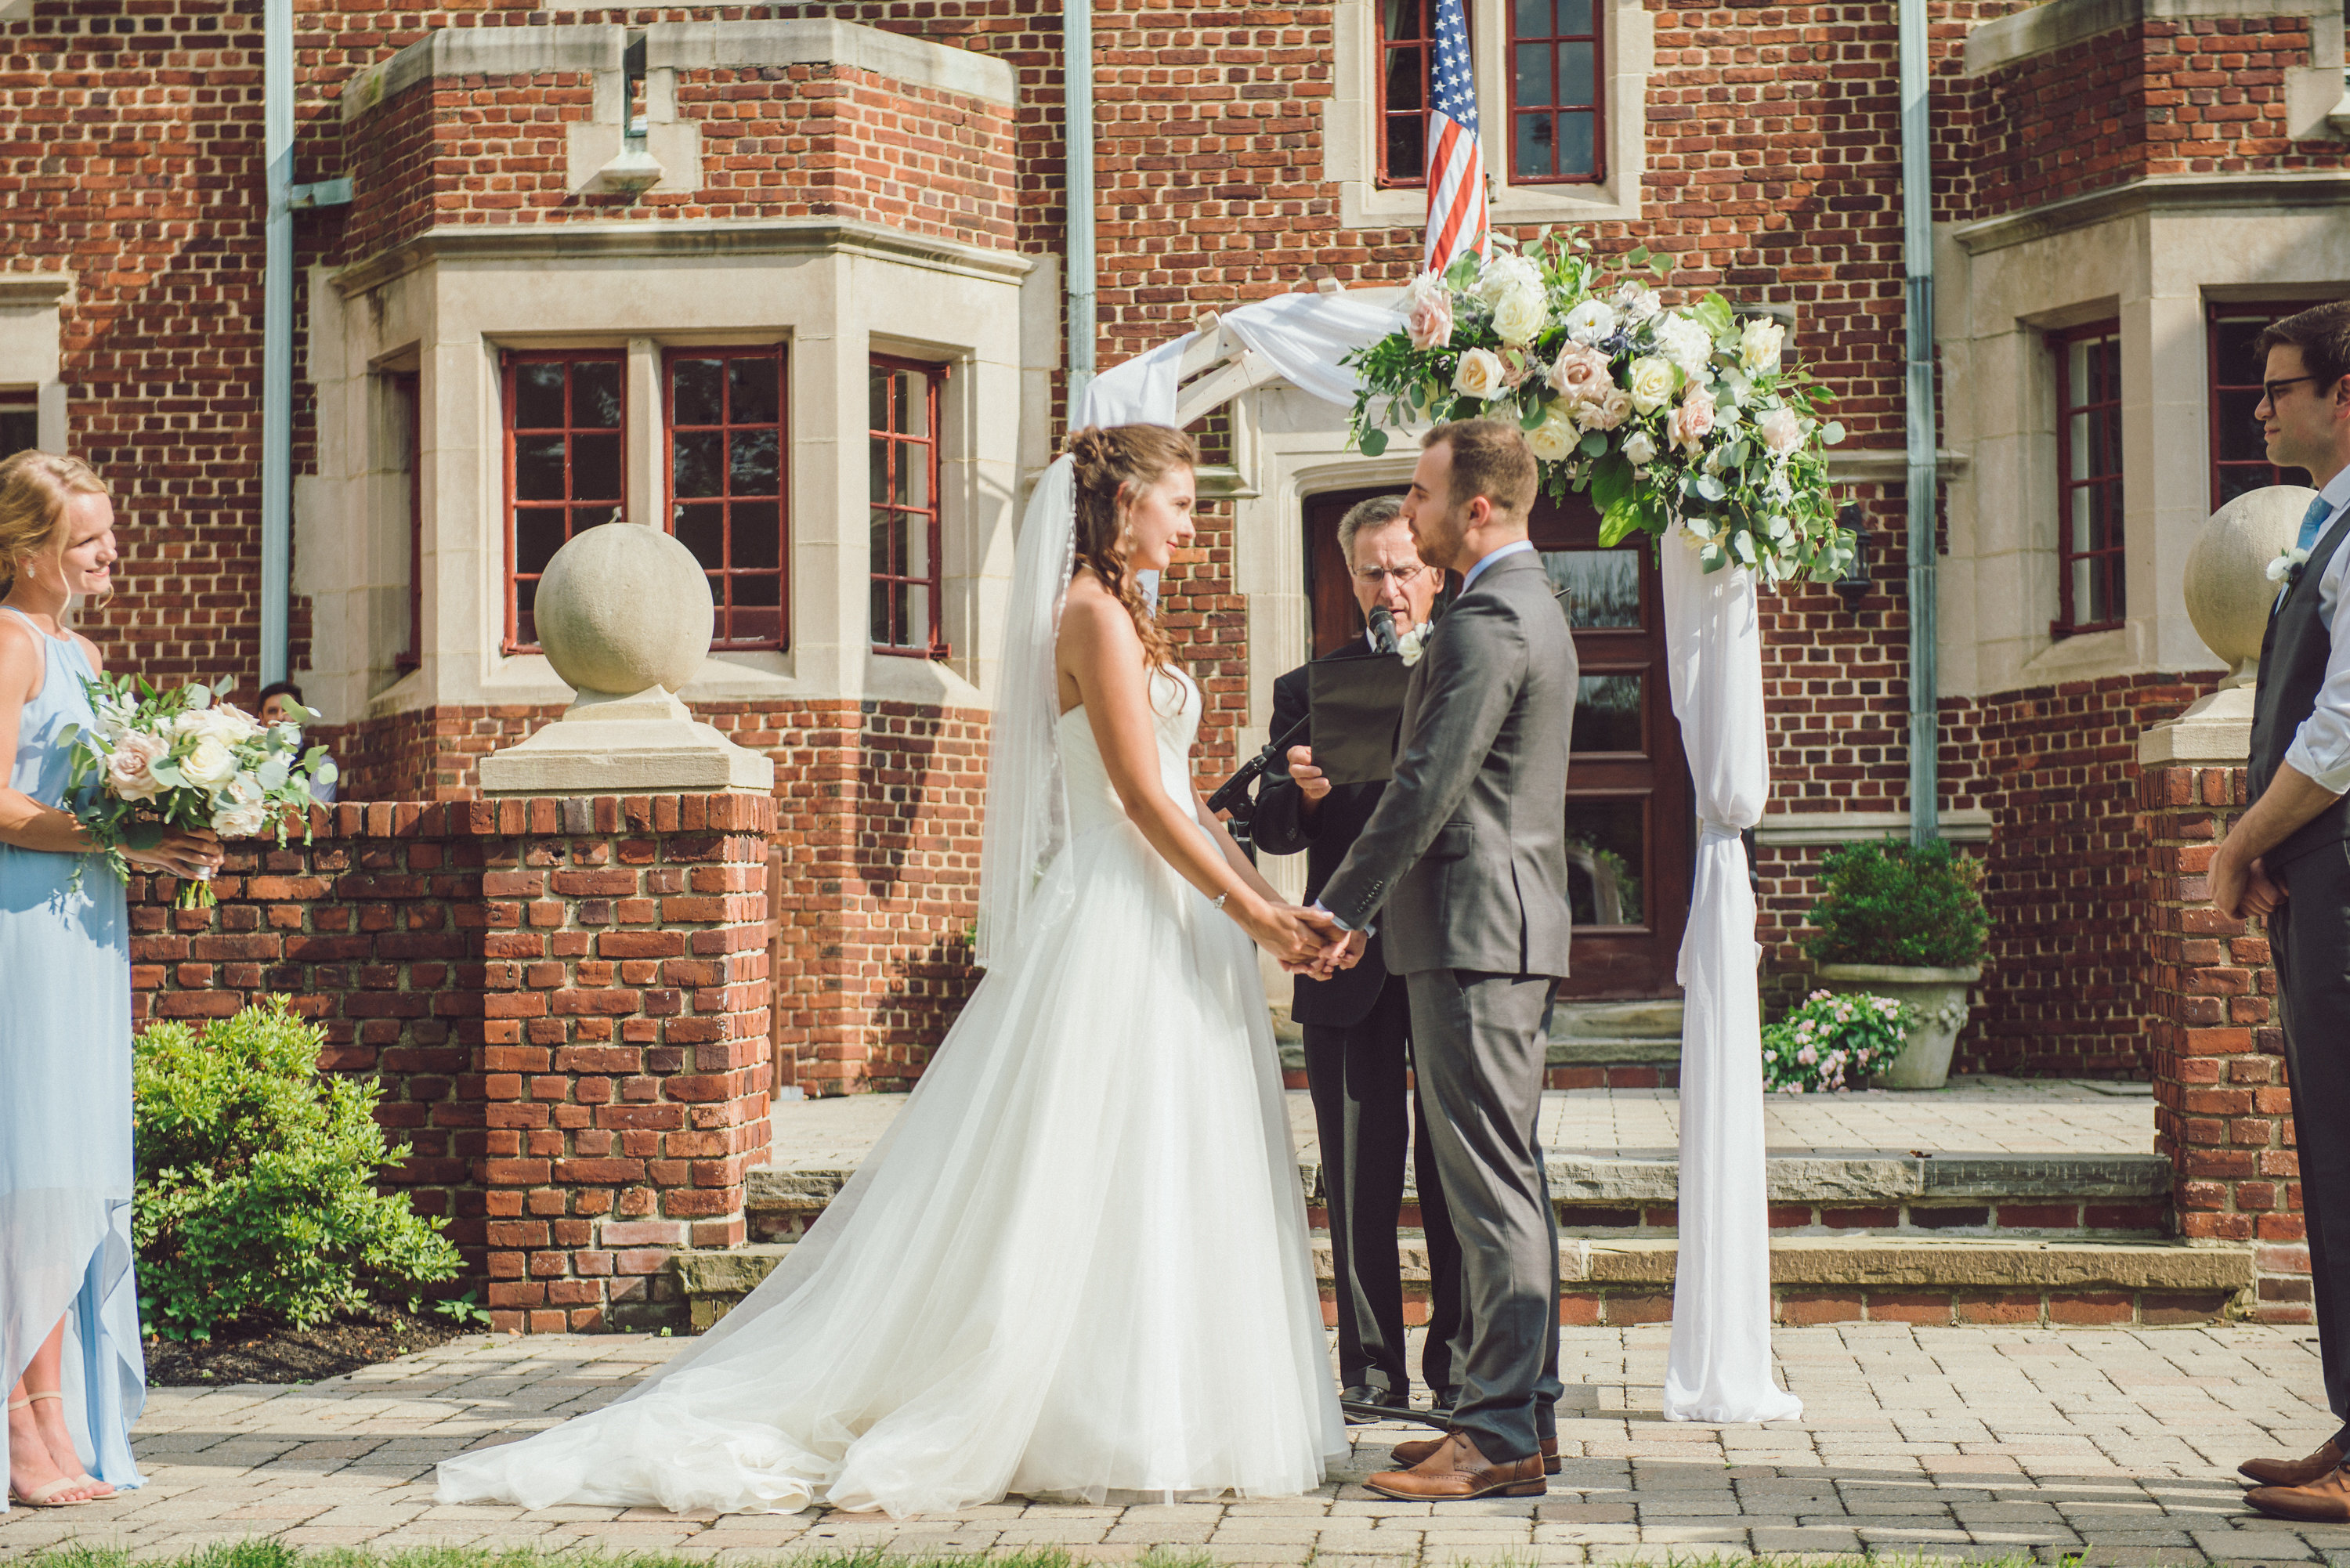 Wedding Day Dreams Moorestown Community House